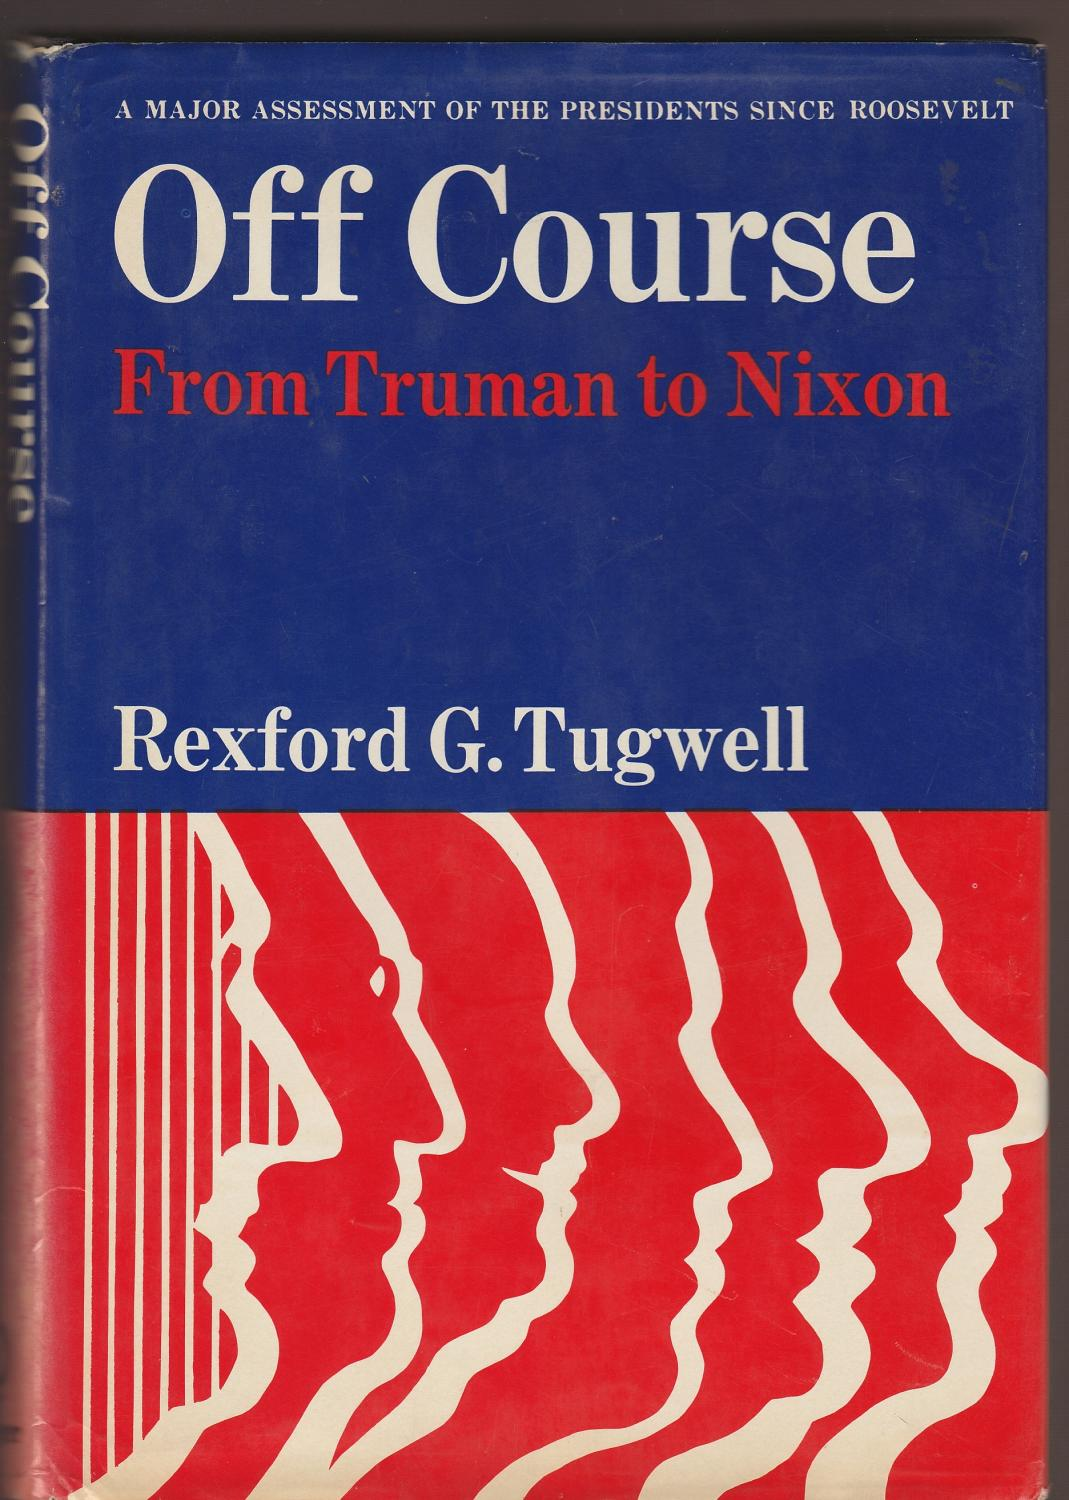 Off Course: From Truman to Nixon de Tugwell, Rexford G.: Very Good  Hardcover (1971) | Whitledge Books